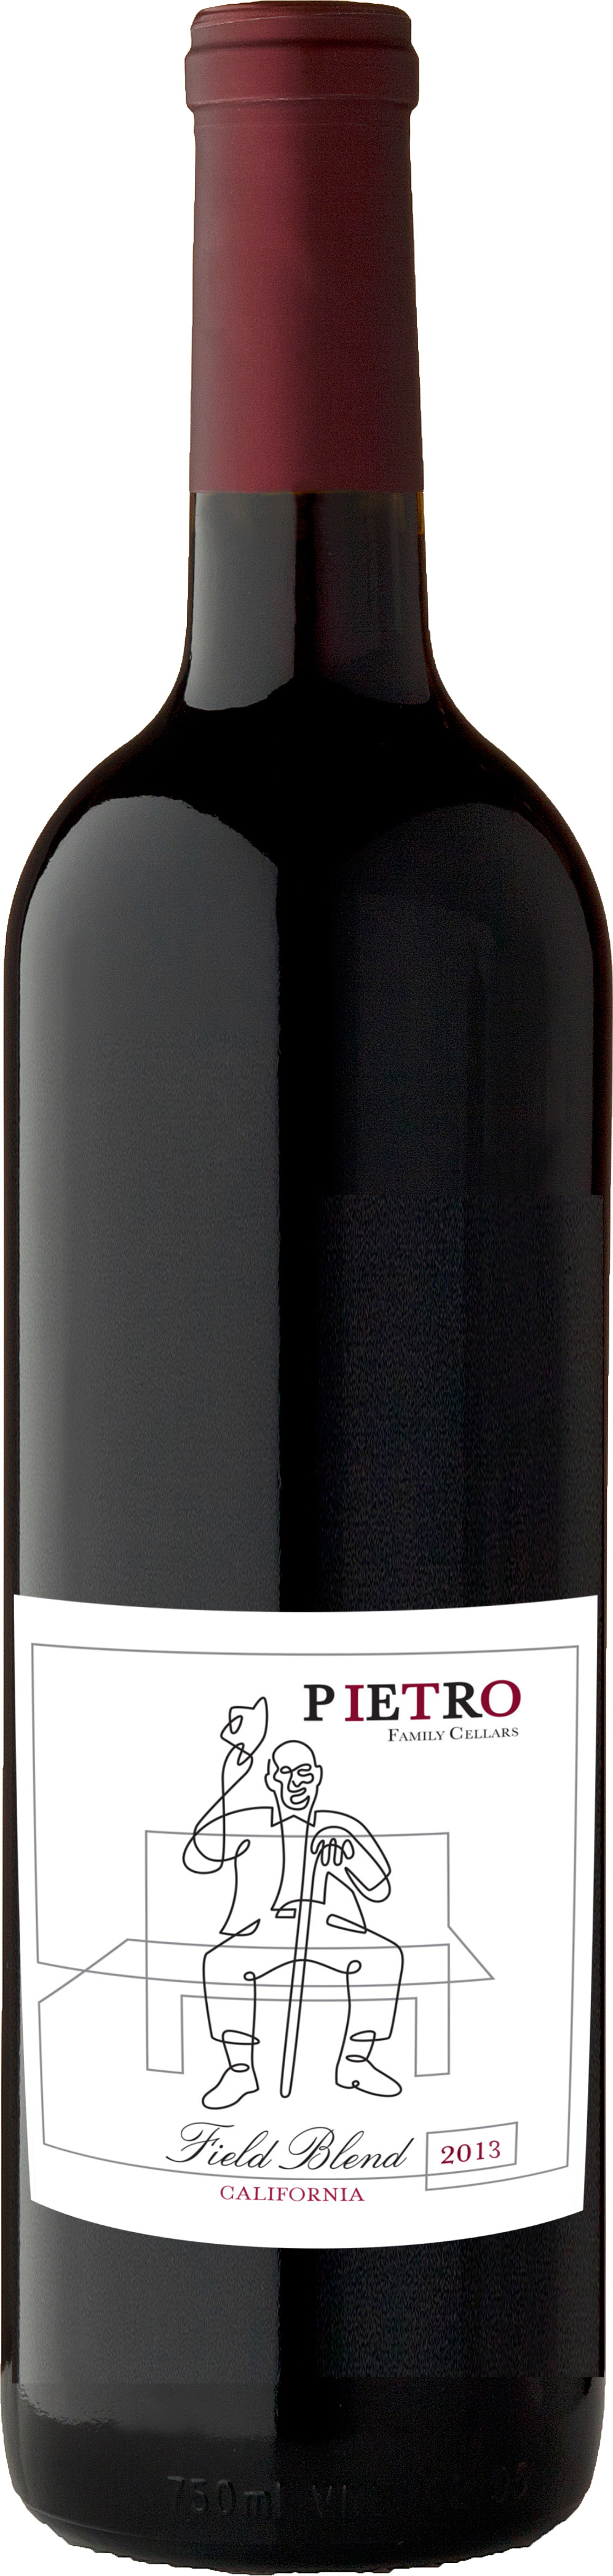 2013 Pietro Field Blend - Library LARGE